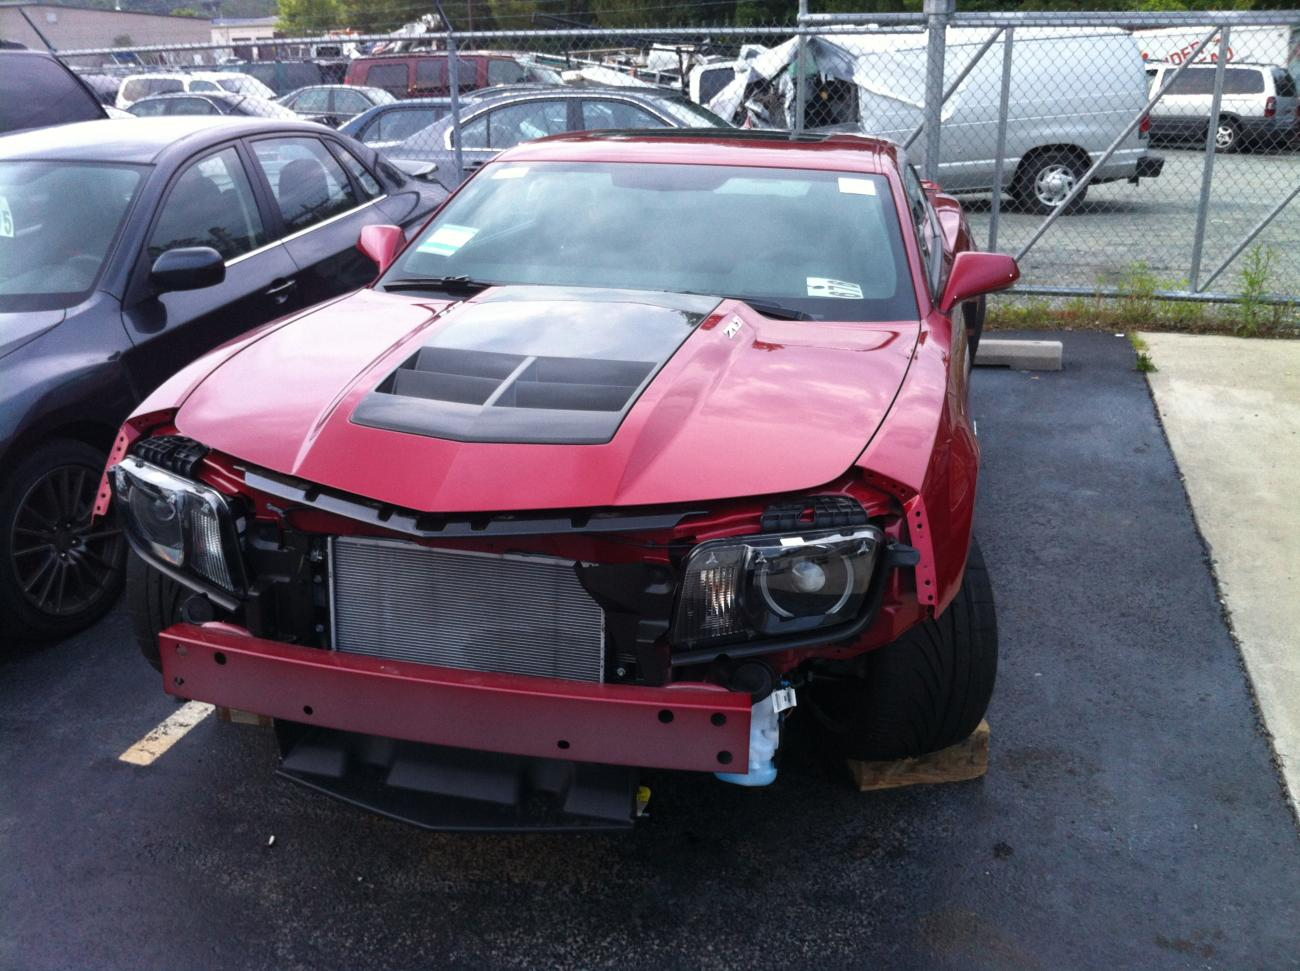 2012 ZL1 wrecked with 11 miles on the odometer at local dealership ...